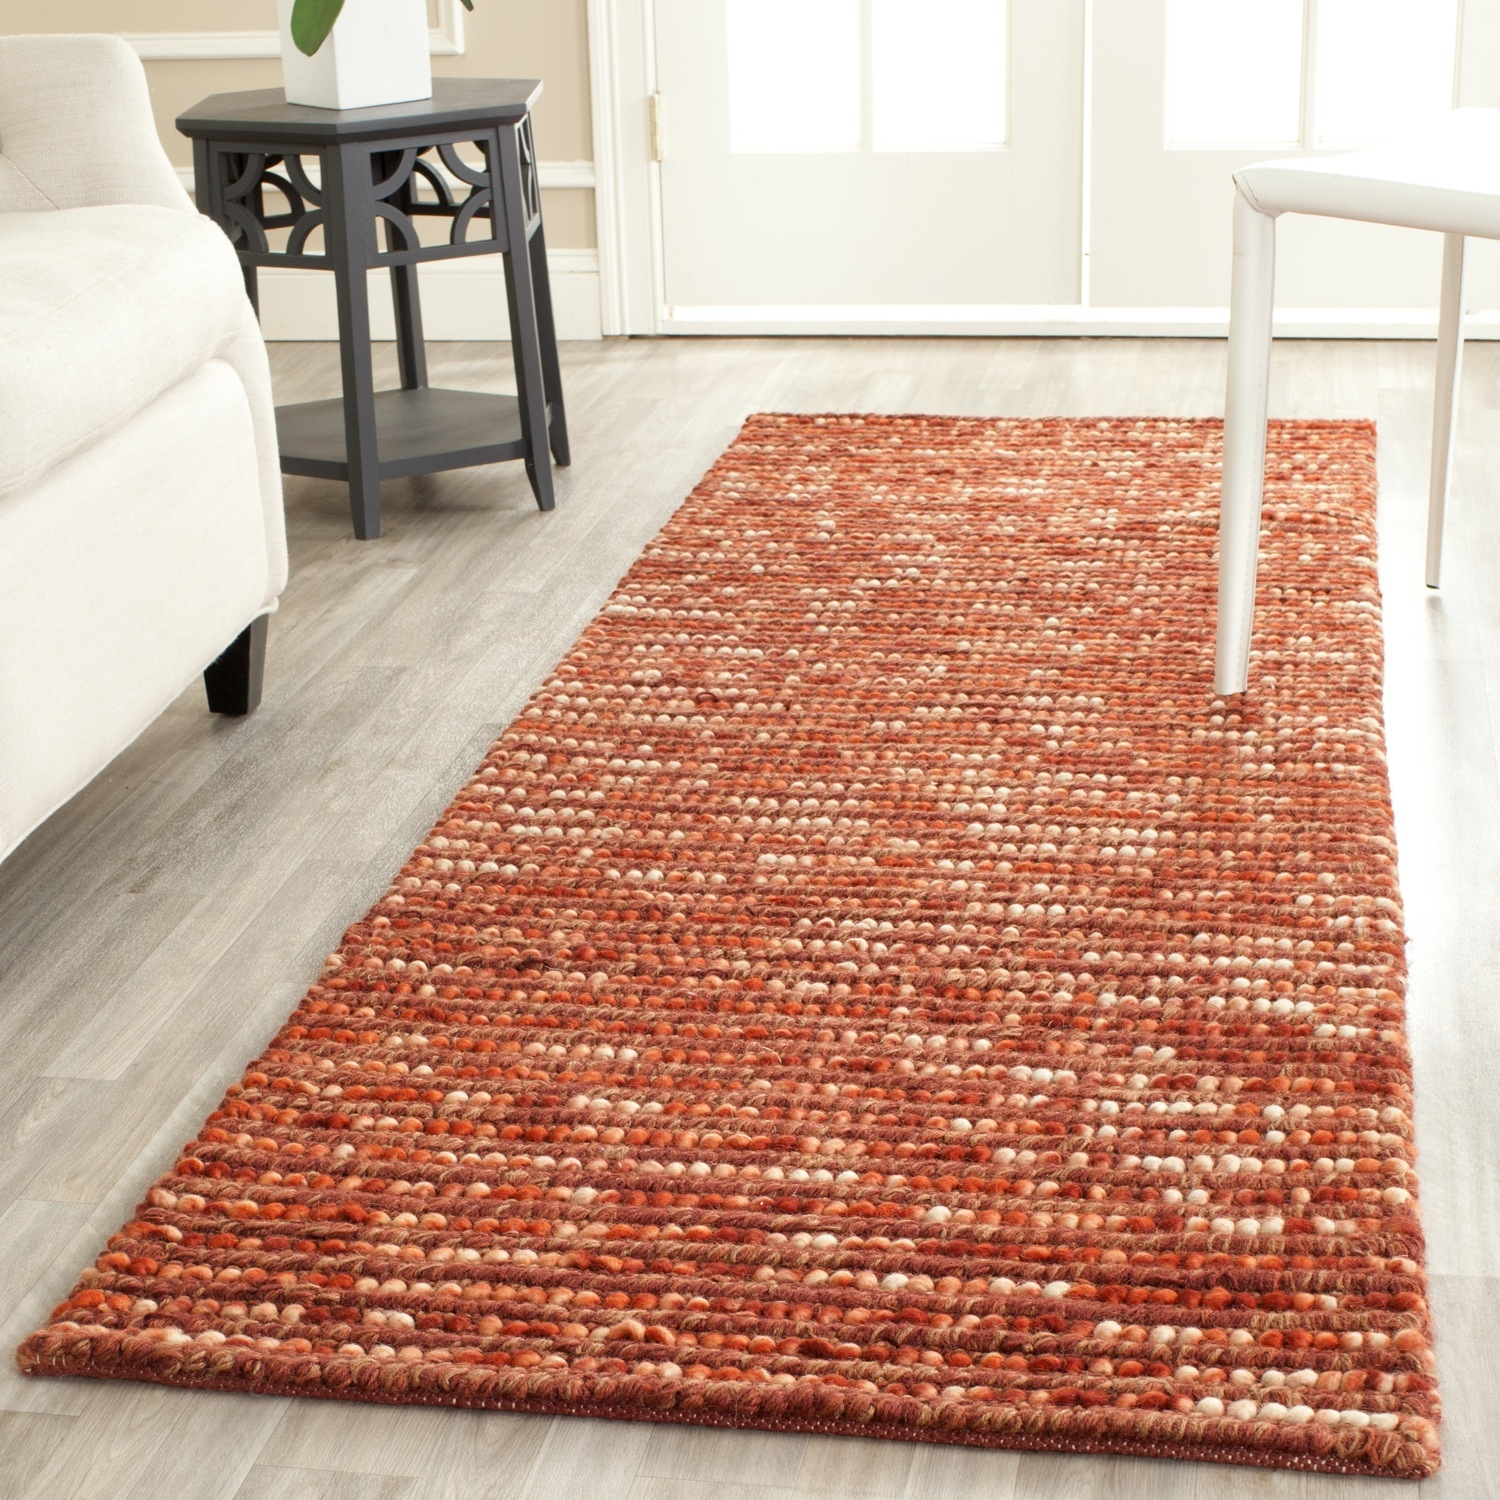 Wool Jute Area Rugs Roselawnlutheran Intended For Jute And Wool Area Rugs (#7 of 7)